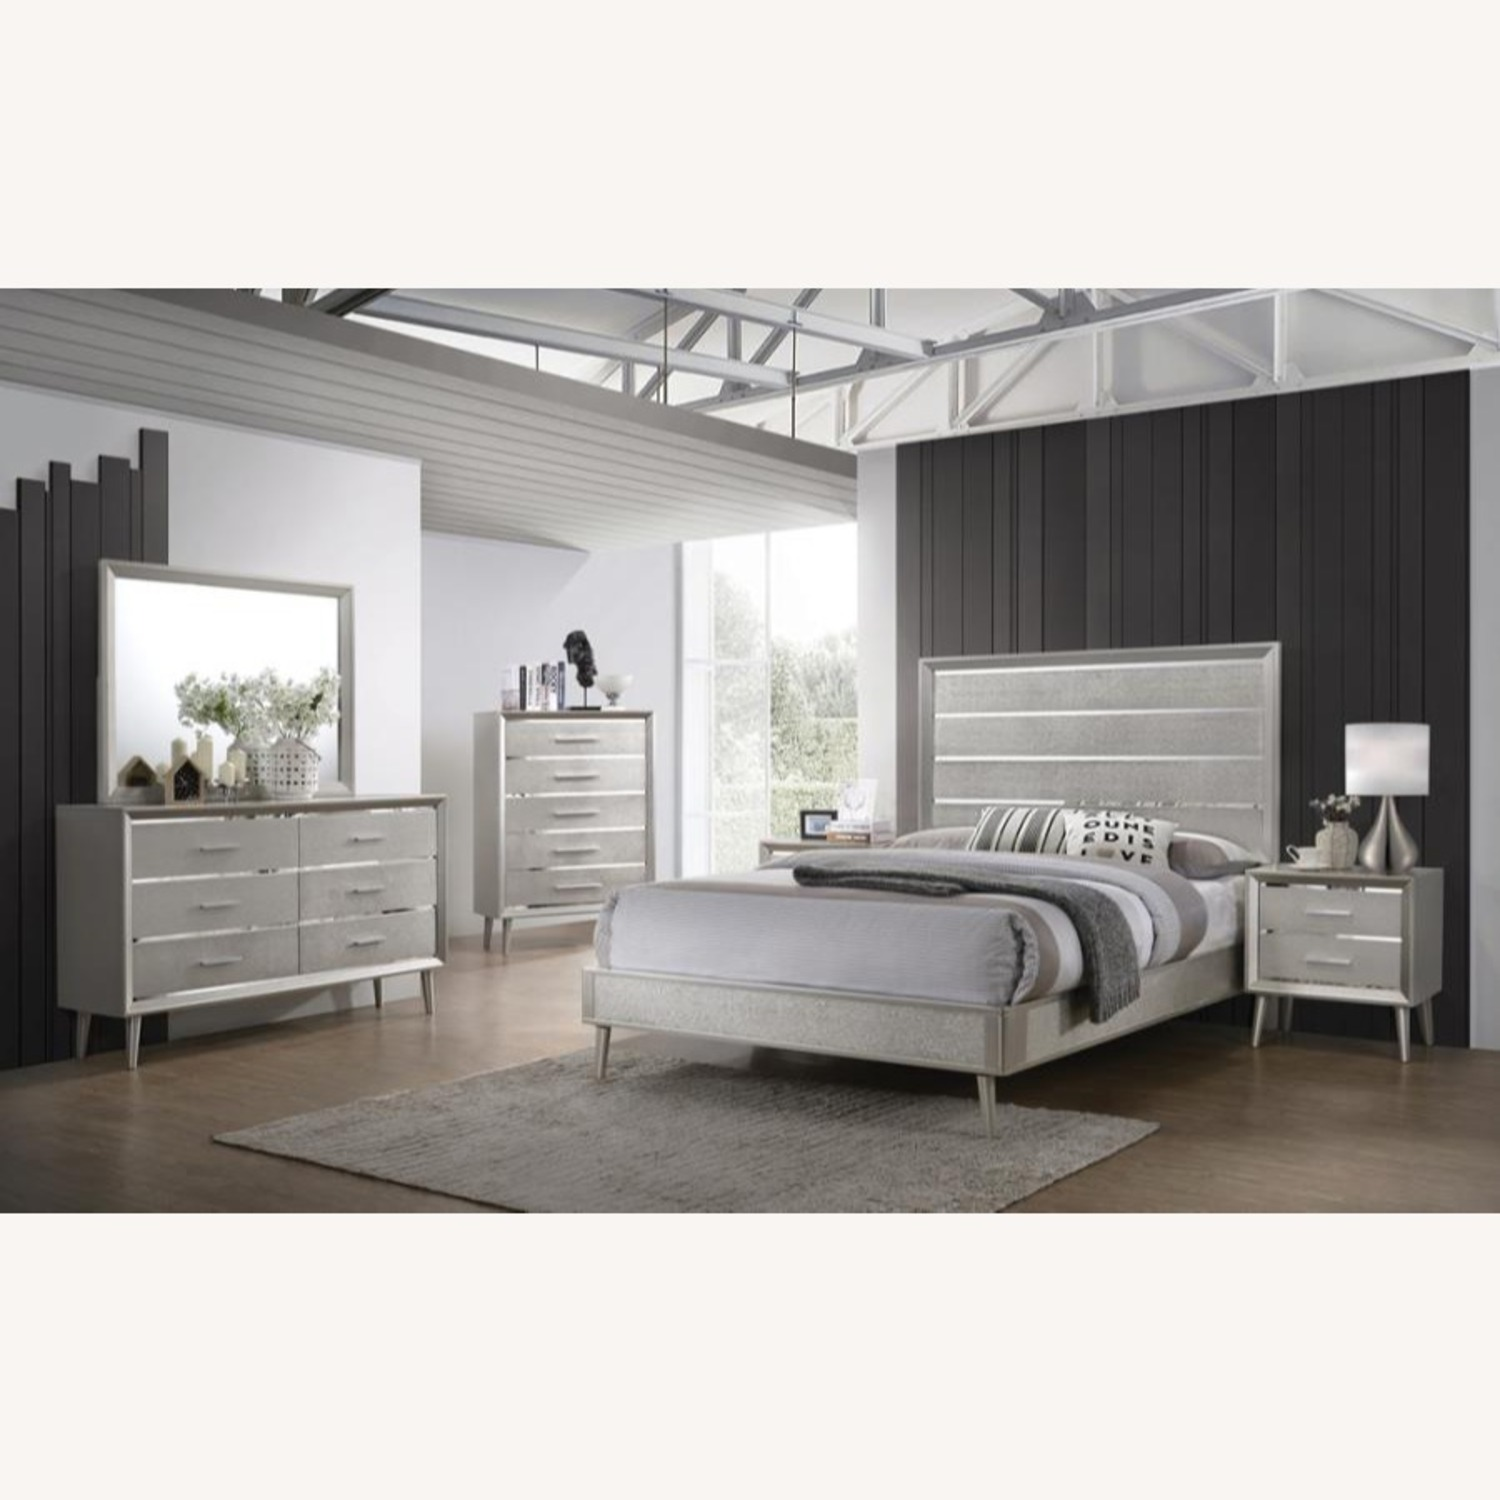 Mid Century King Bed In Metallic Sterling Finish - image-2